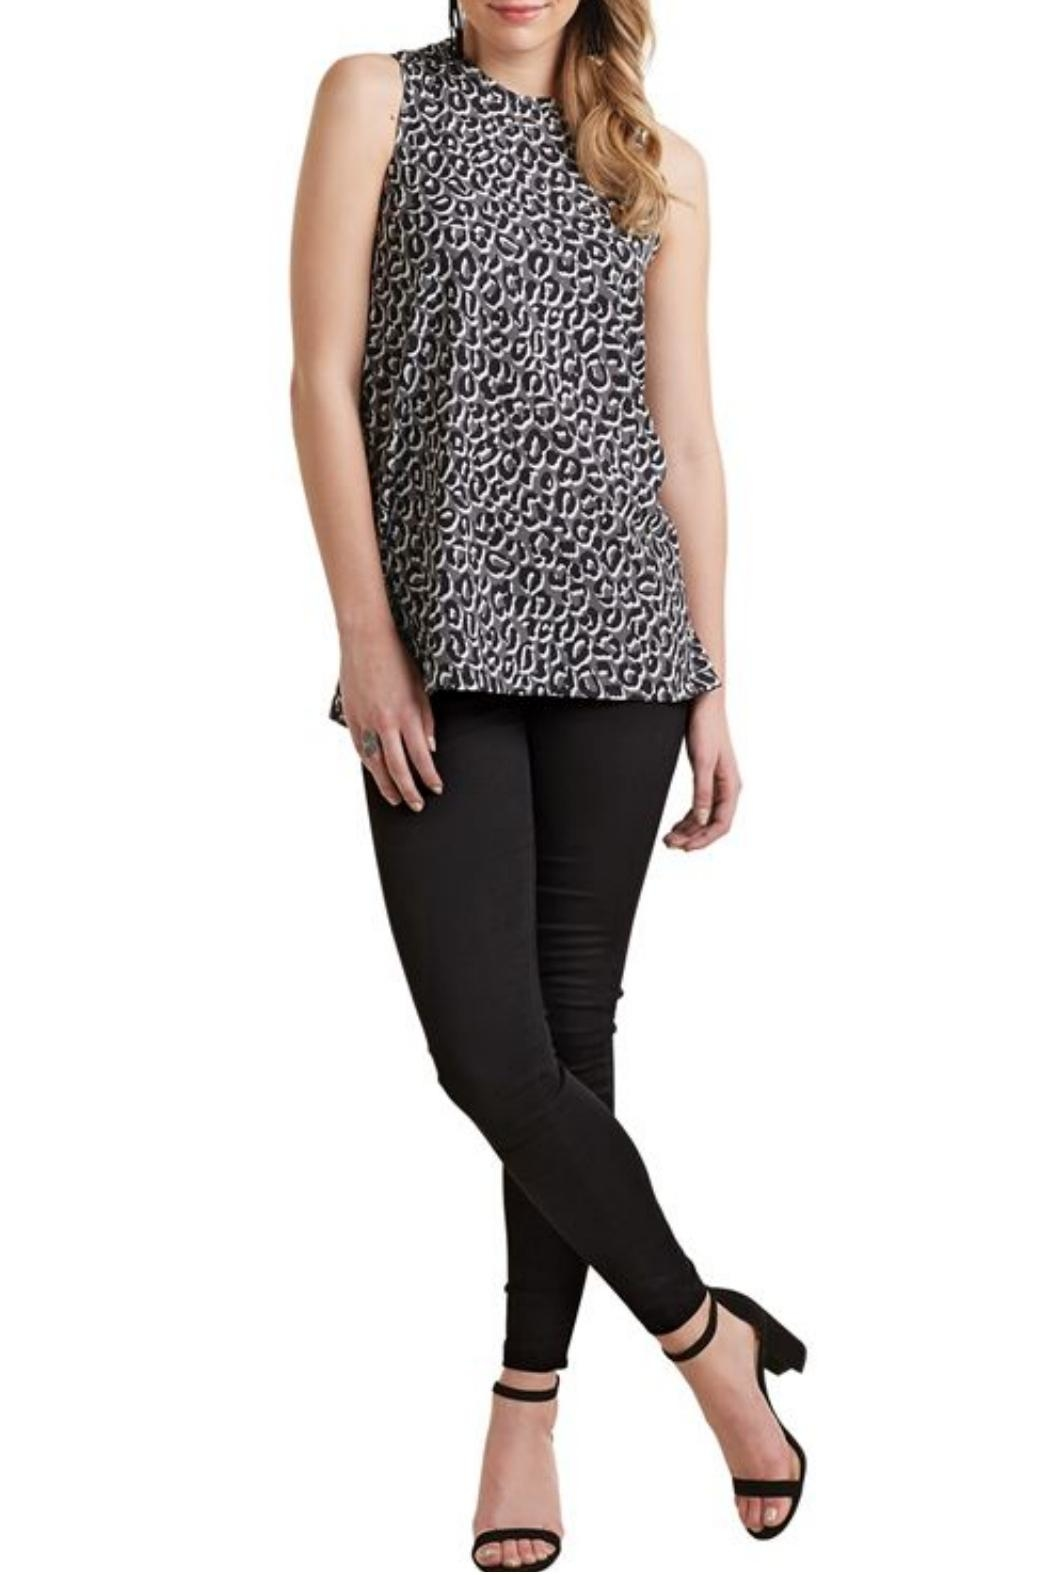 Mud Pie Sleeveless Leopard Top - Front Cropped Image